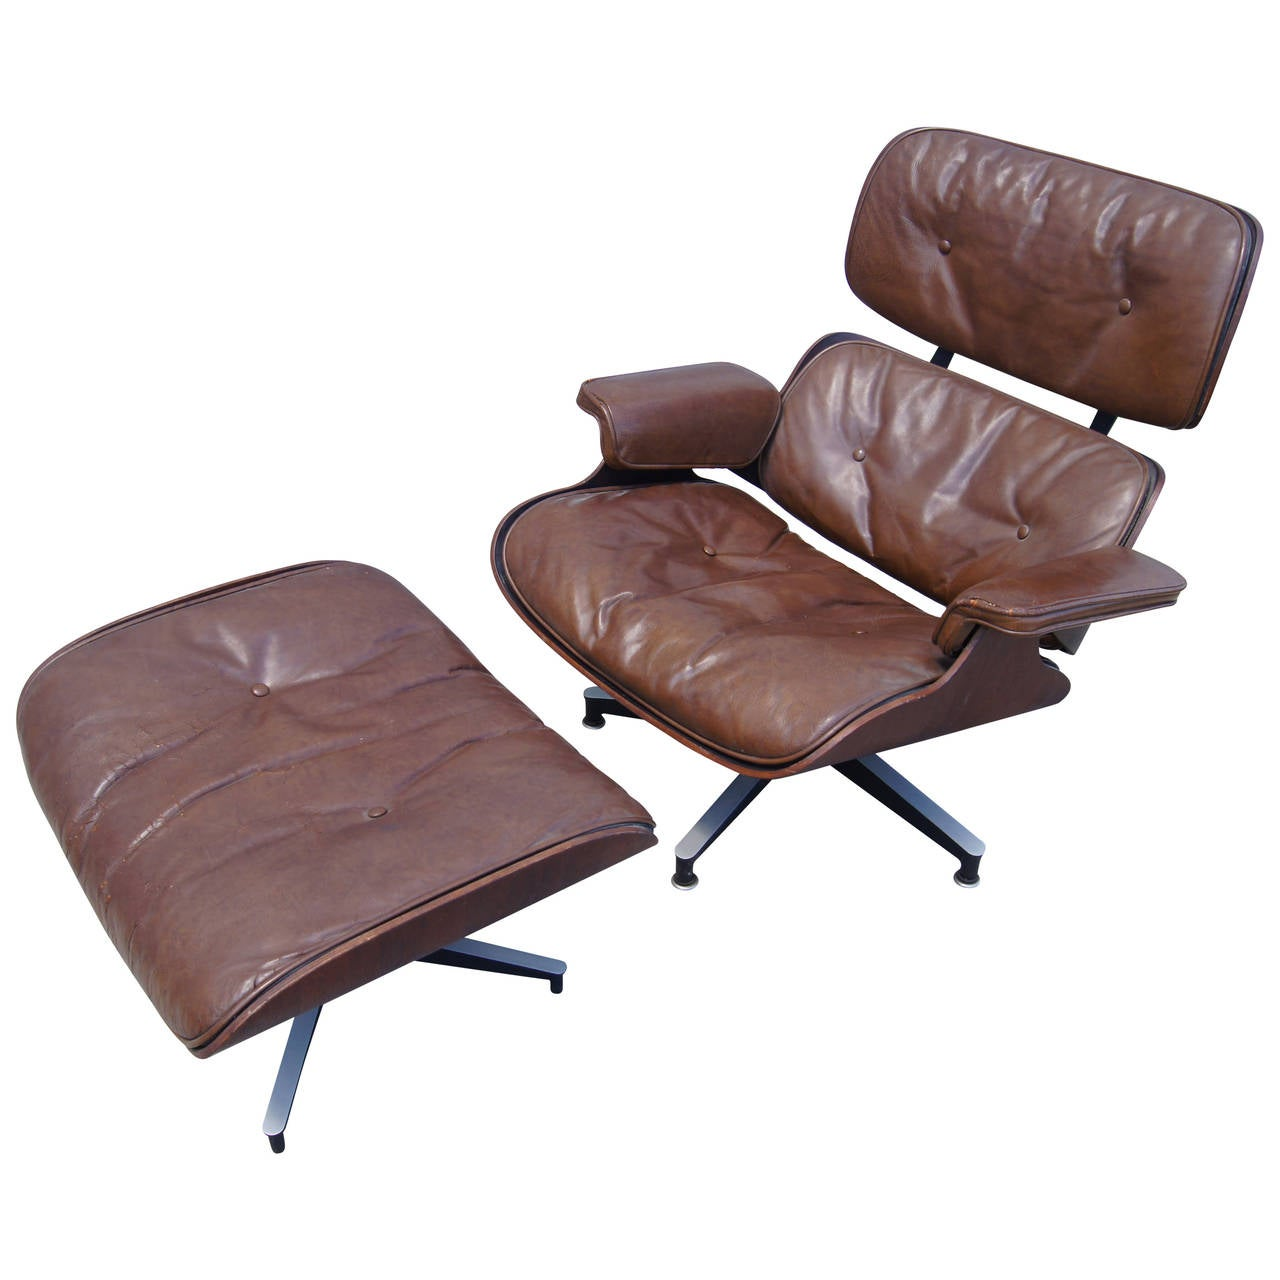 early production lounge chair and ottoman by eames for herman miller for sale at 1stdibs. Black Bedroom Furniture Sets. Home Design Ideas